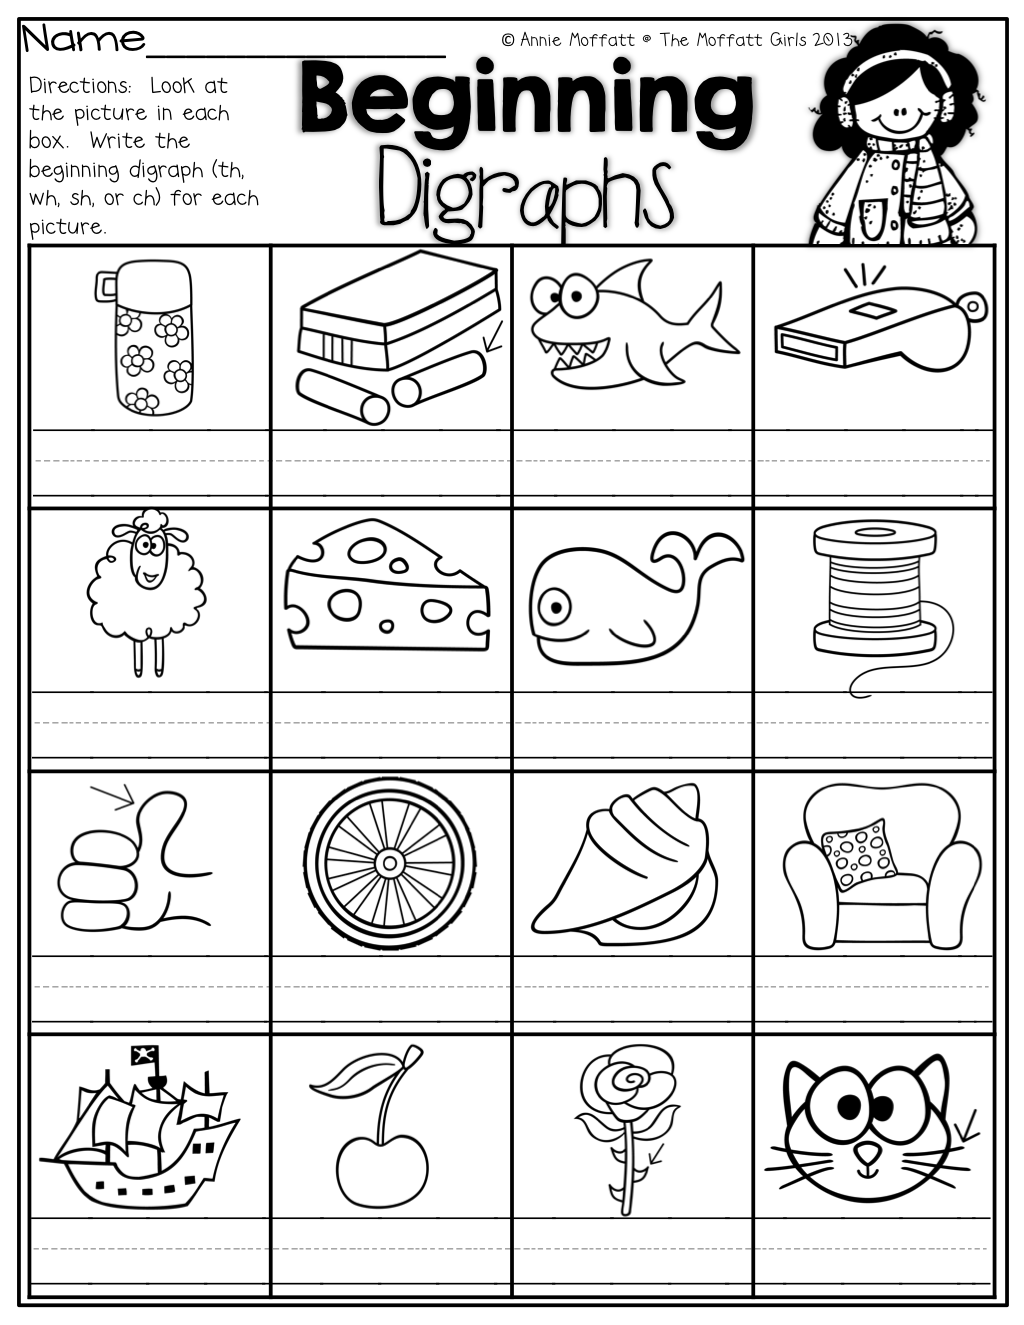 Beginning Digraphs Write The Beginning Digraphs For Each Picture Th Wh Sh Or Ch